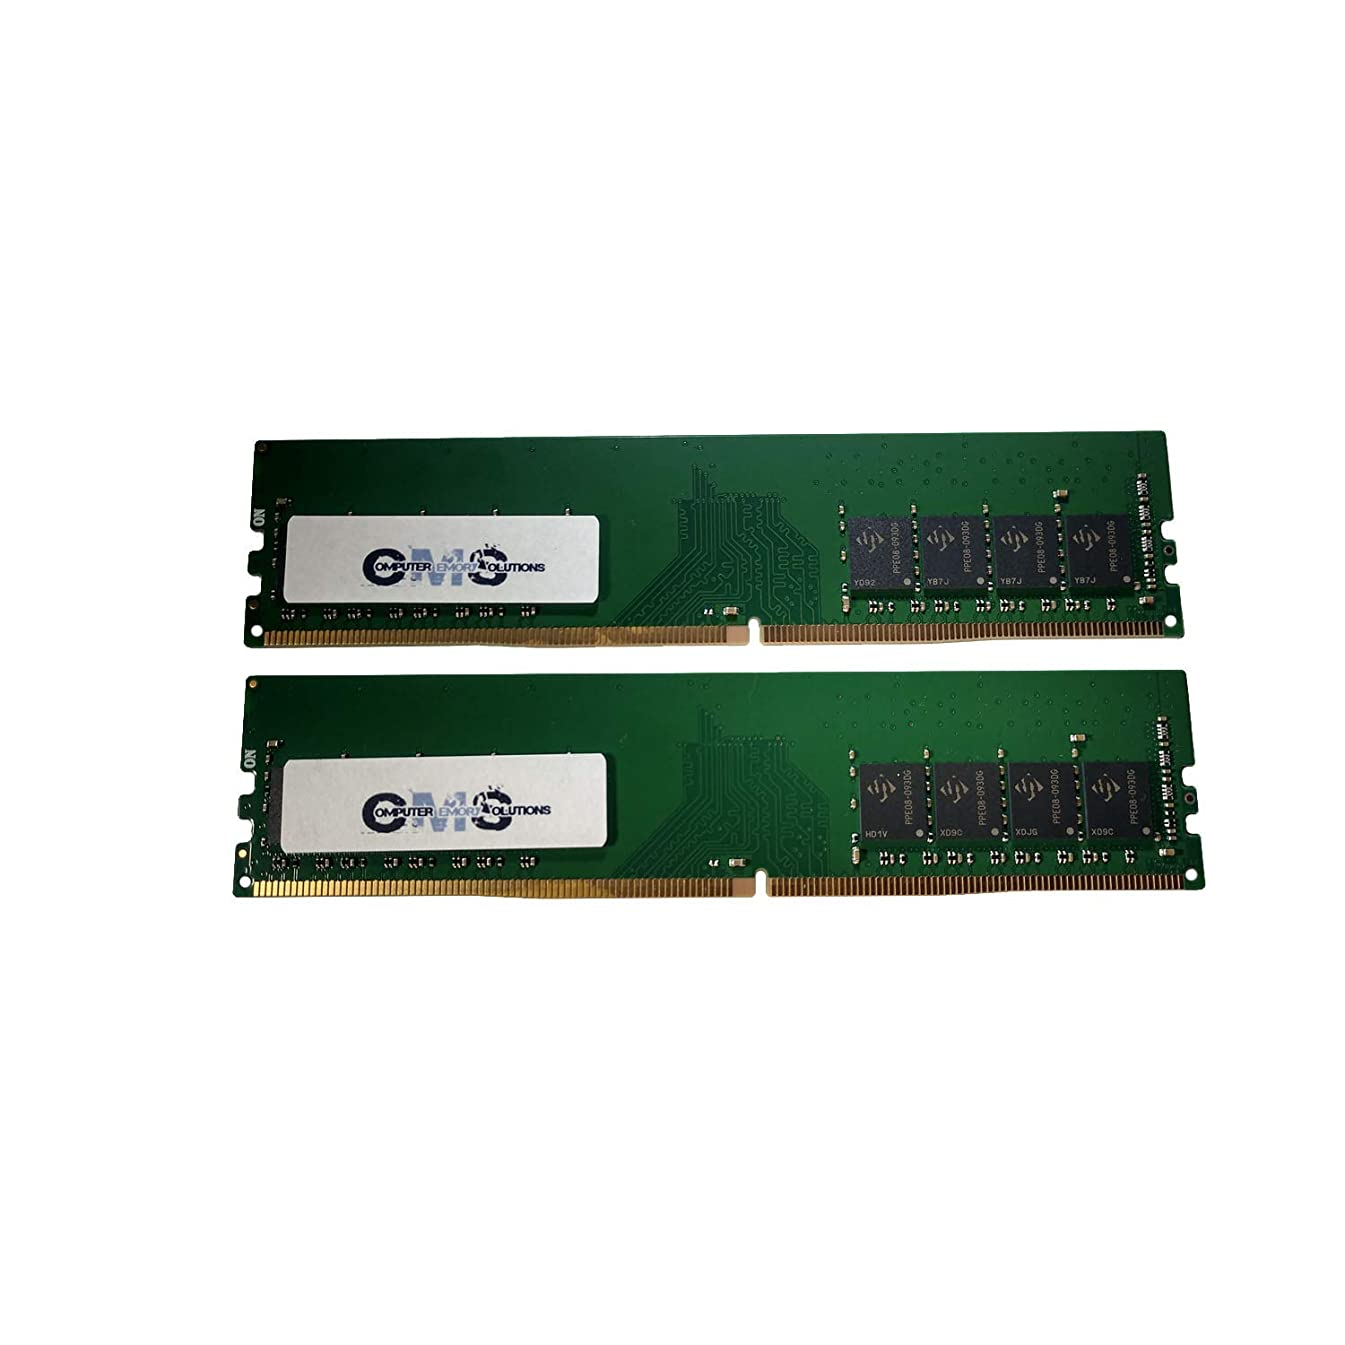 16GB (2x8GB) Memory RAM Compatible with Alienware x51 R3 by CMS (B107)